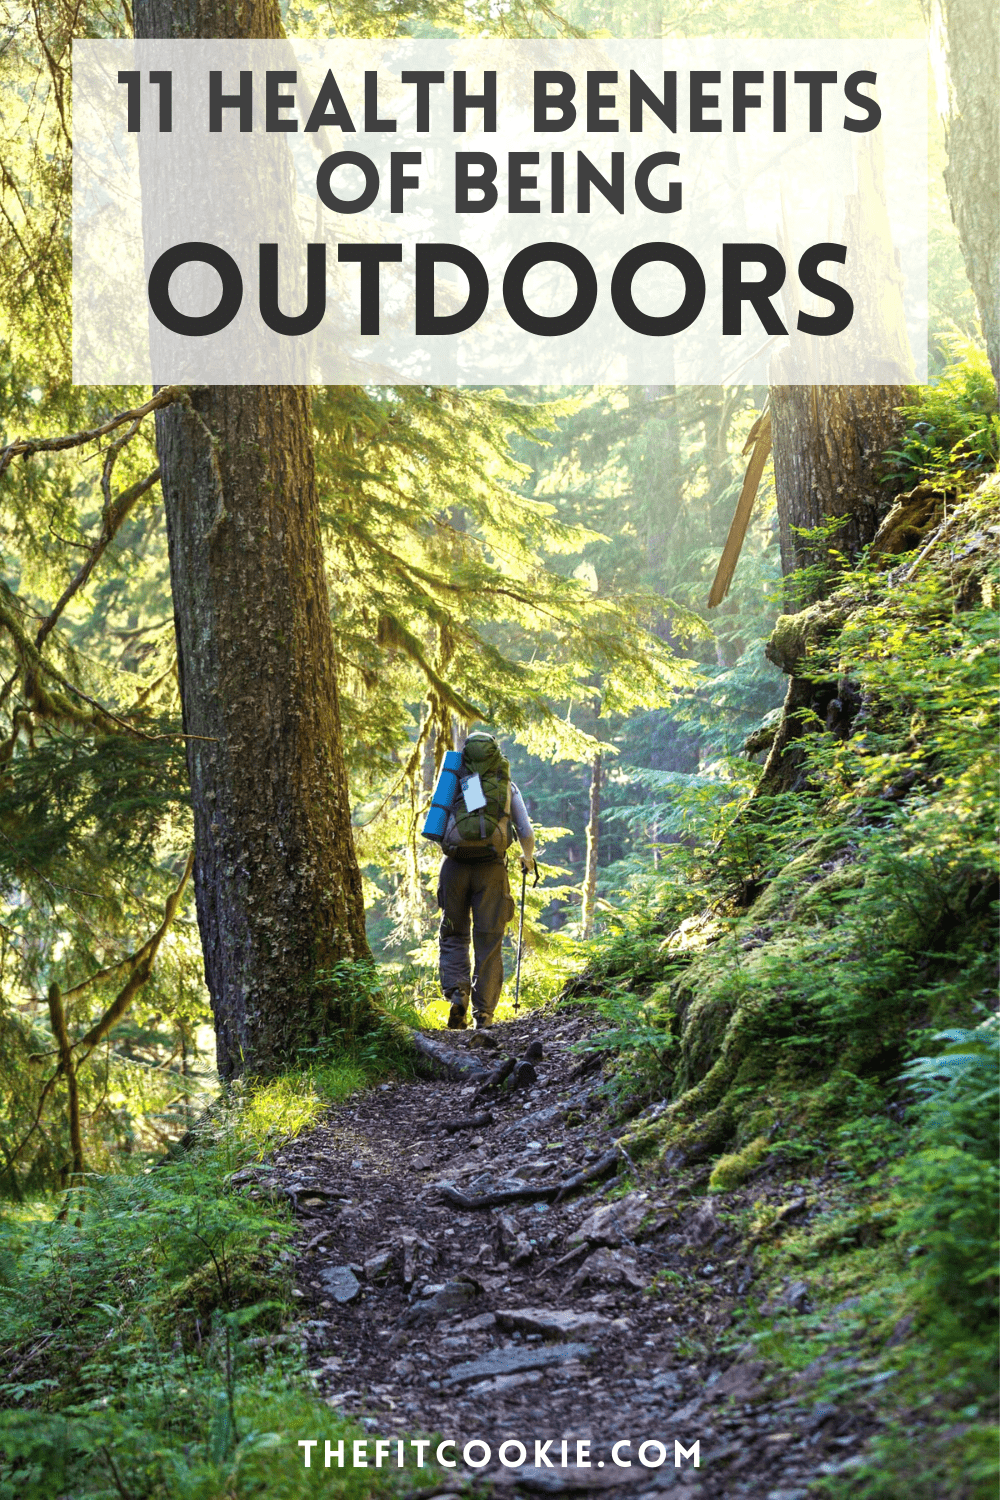 man hiking in the forest with text overlay that says 11 health benefits of being outdoors